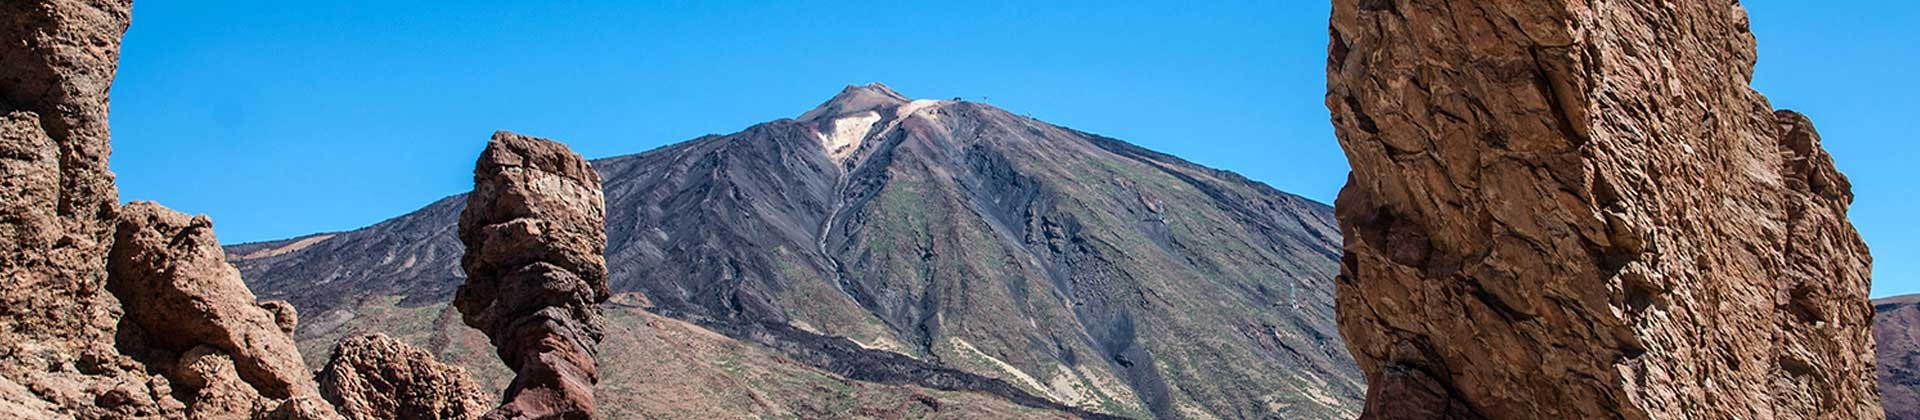 https://www.goodmorningtenerife.com/wp-content/uploads/2014/08/04_slide_teide_GM_Tenerife-1920x420.jpg